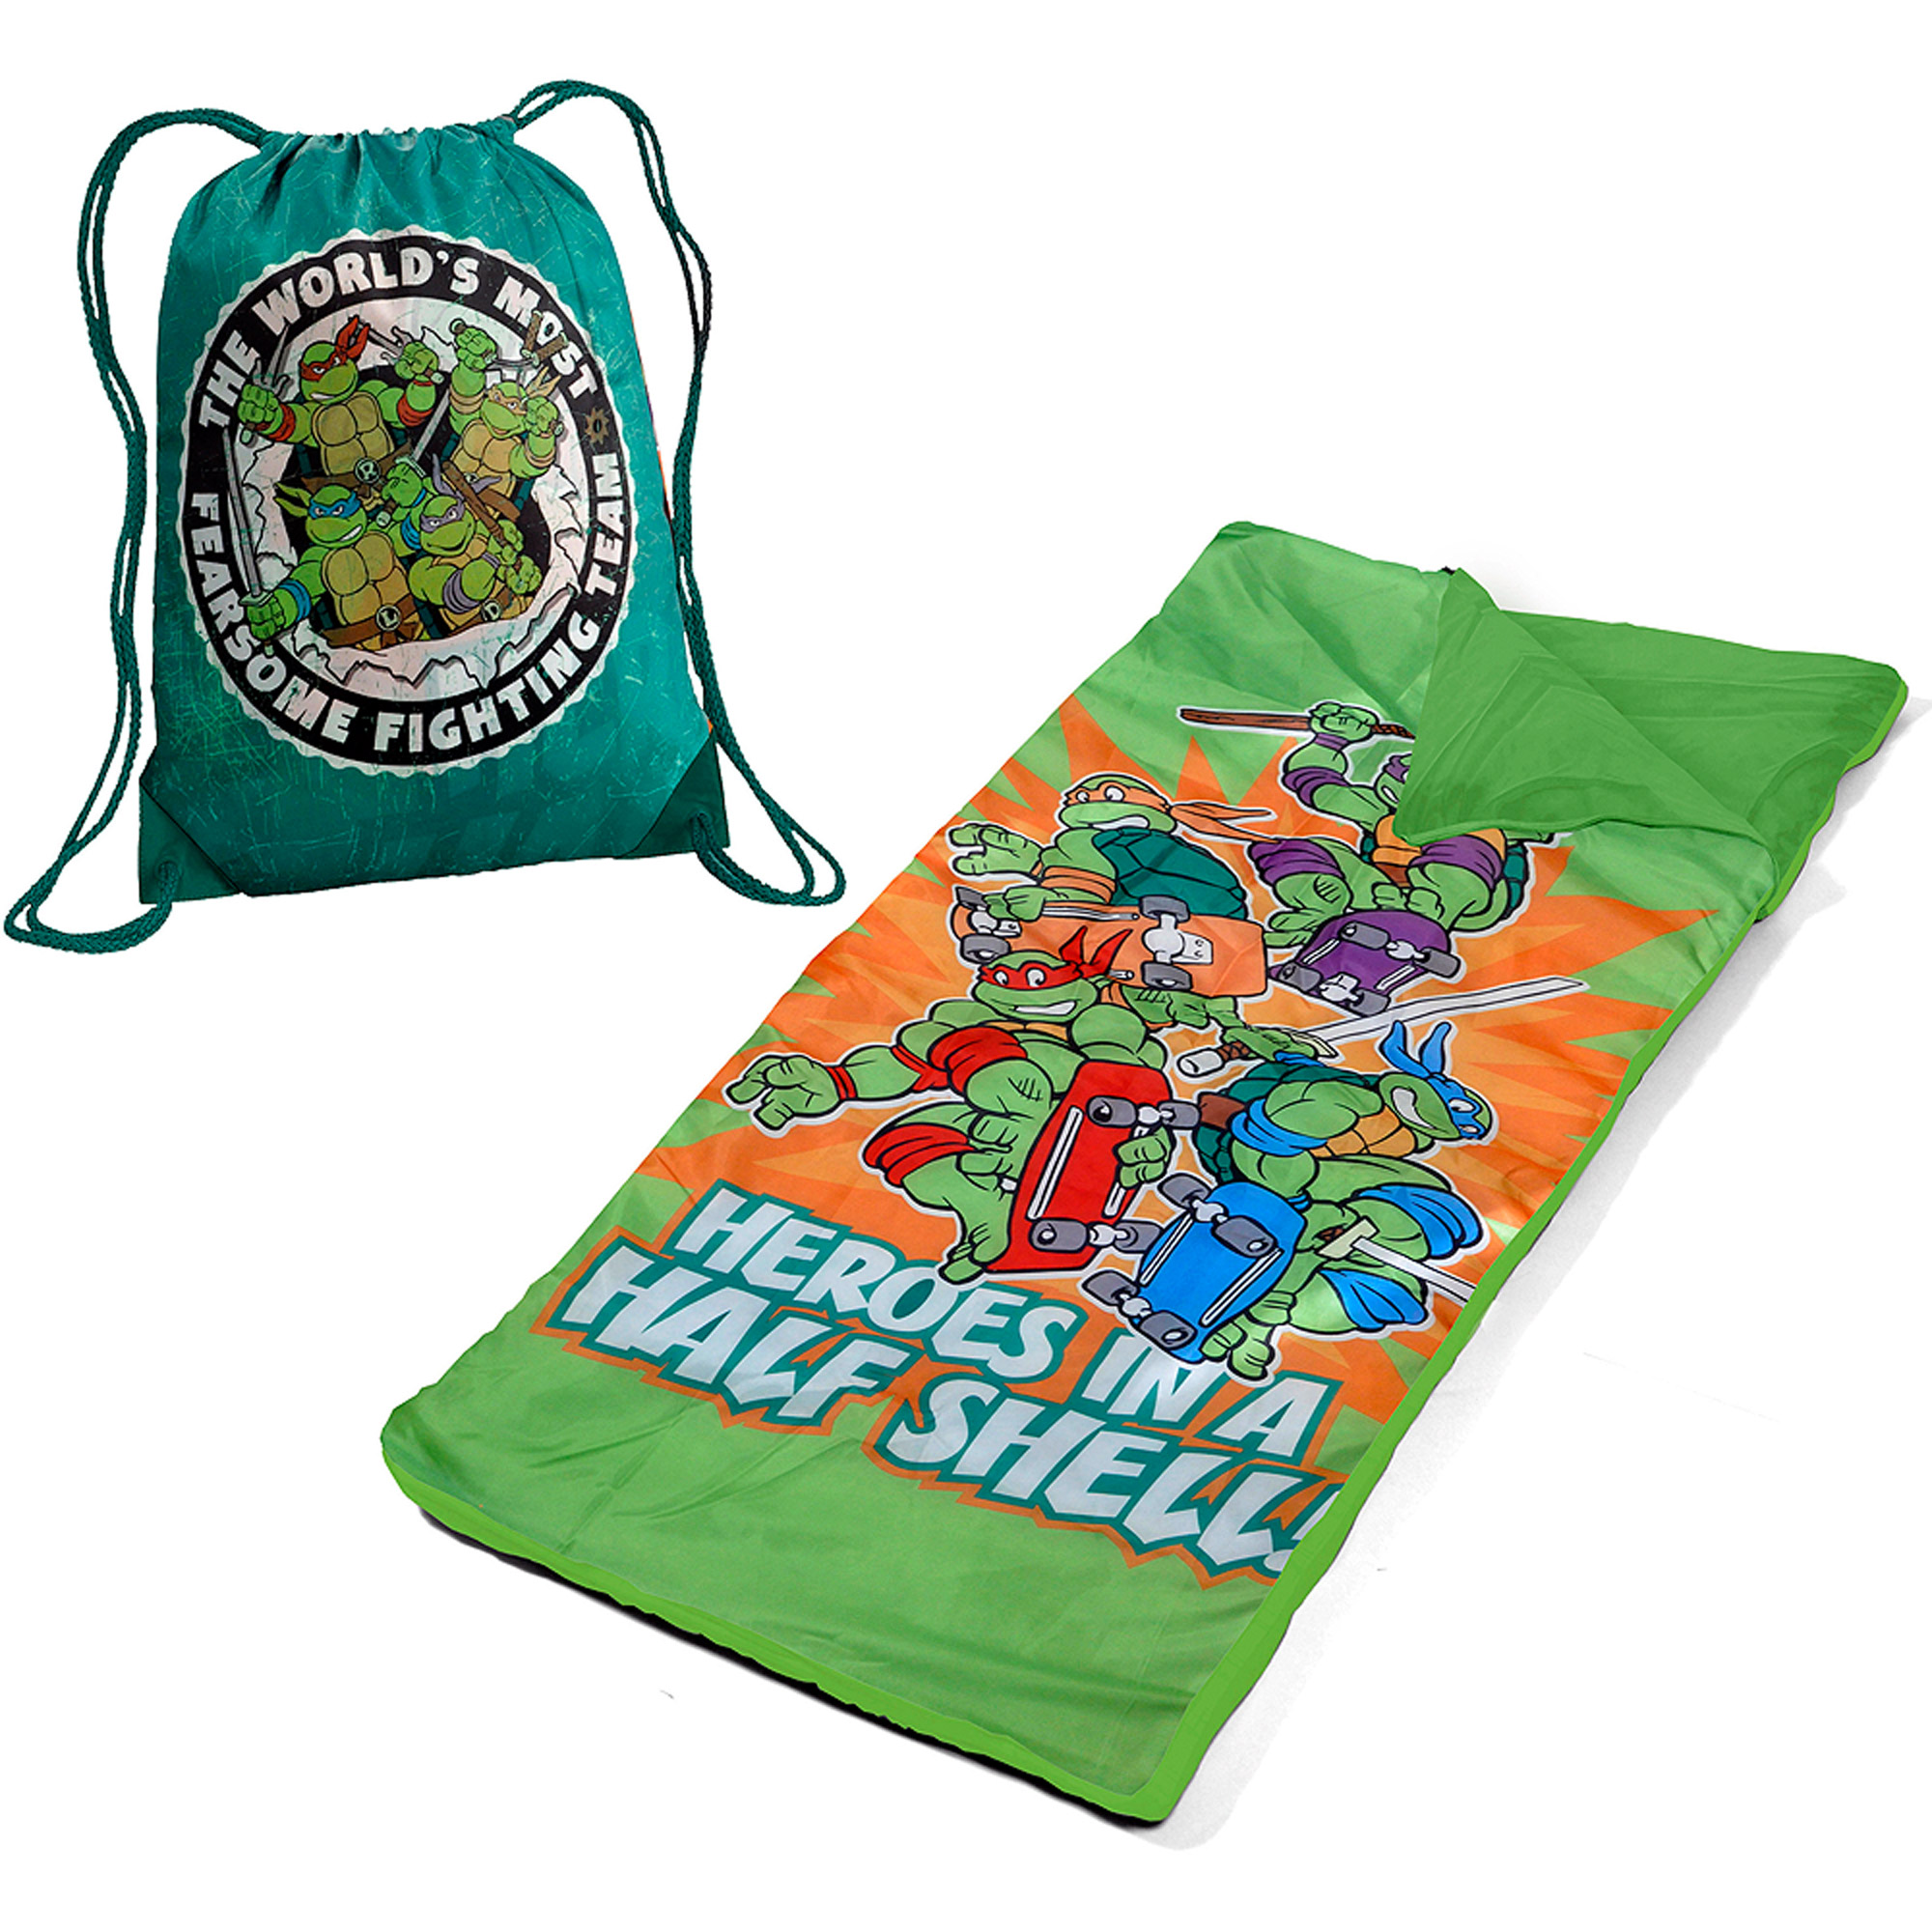 Nickelodeon Teenage Mutant Ninja Turtles Toddler Slumber Duffle Nap Mat